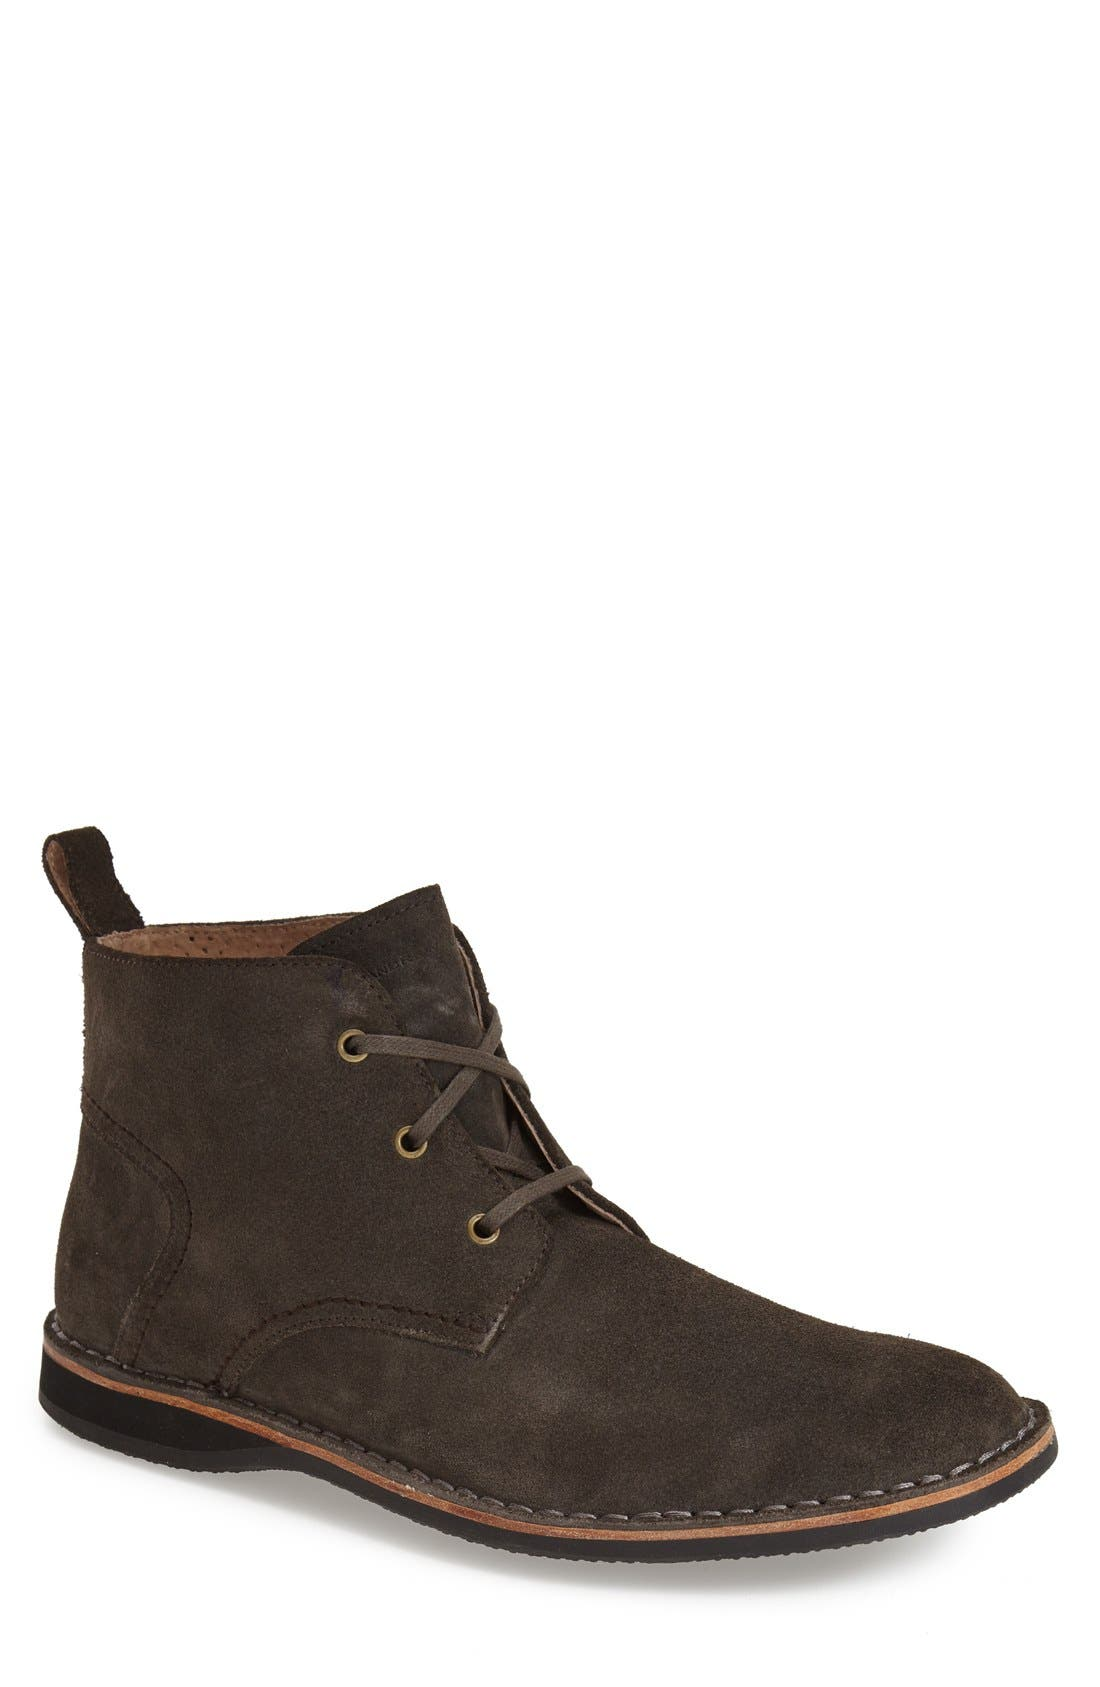 ANDREW MARC 'Dorchester' Chukka Boot